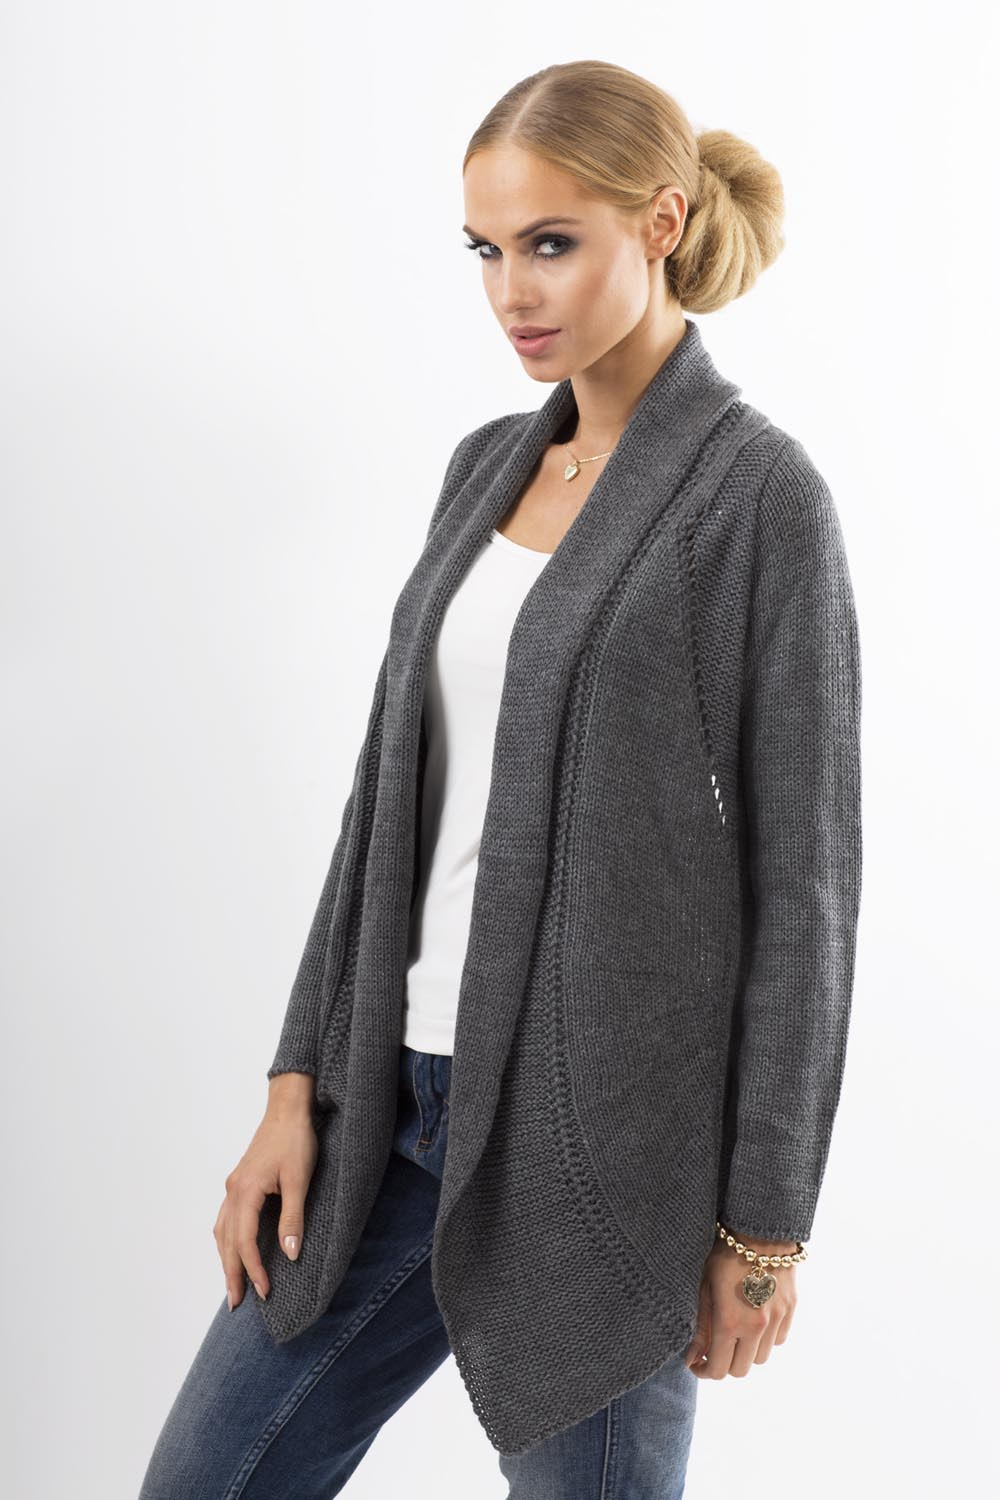 Graphite Shawl Collar Ladies Cardigan with Eyelet Knit Pattern